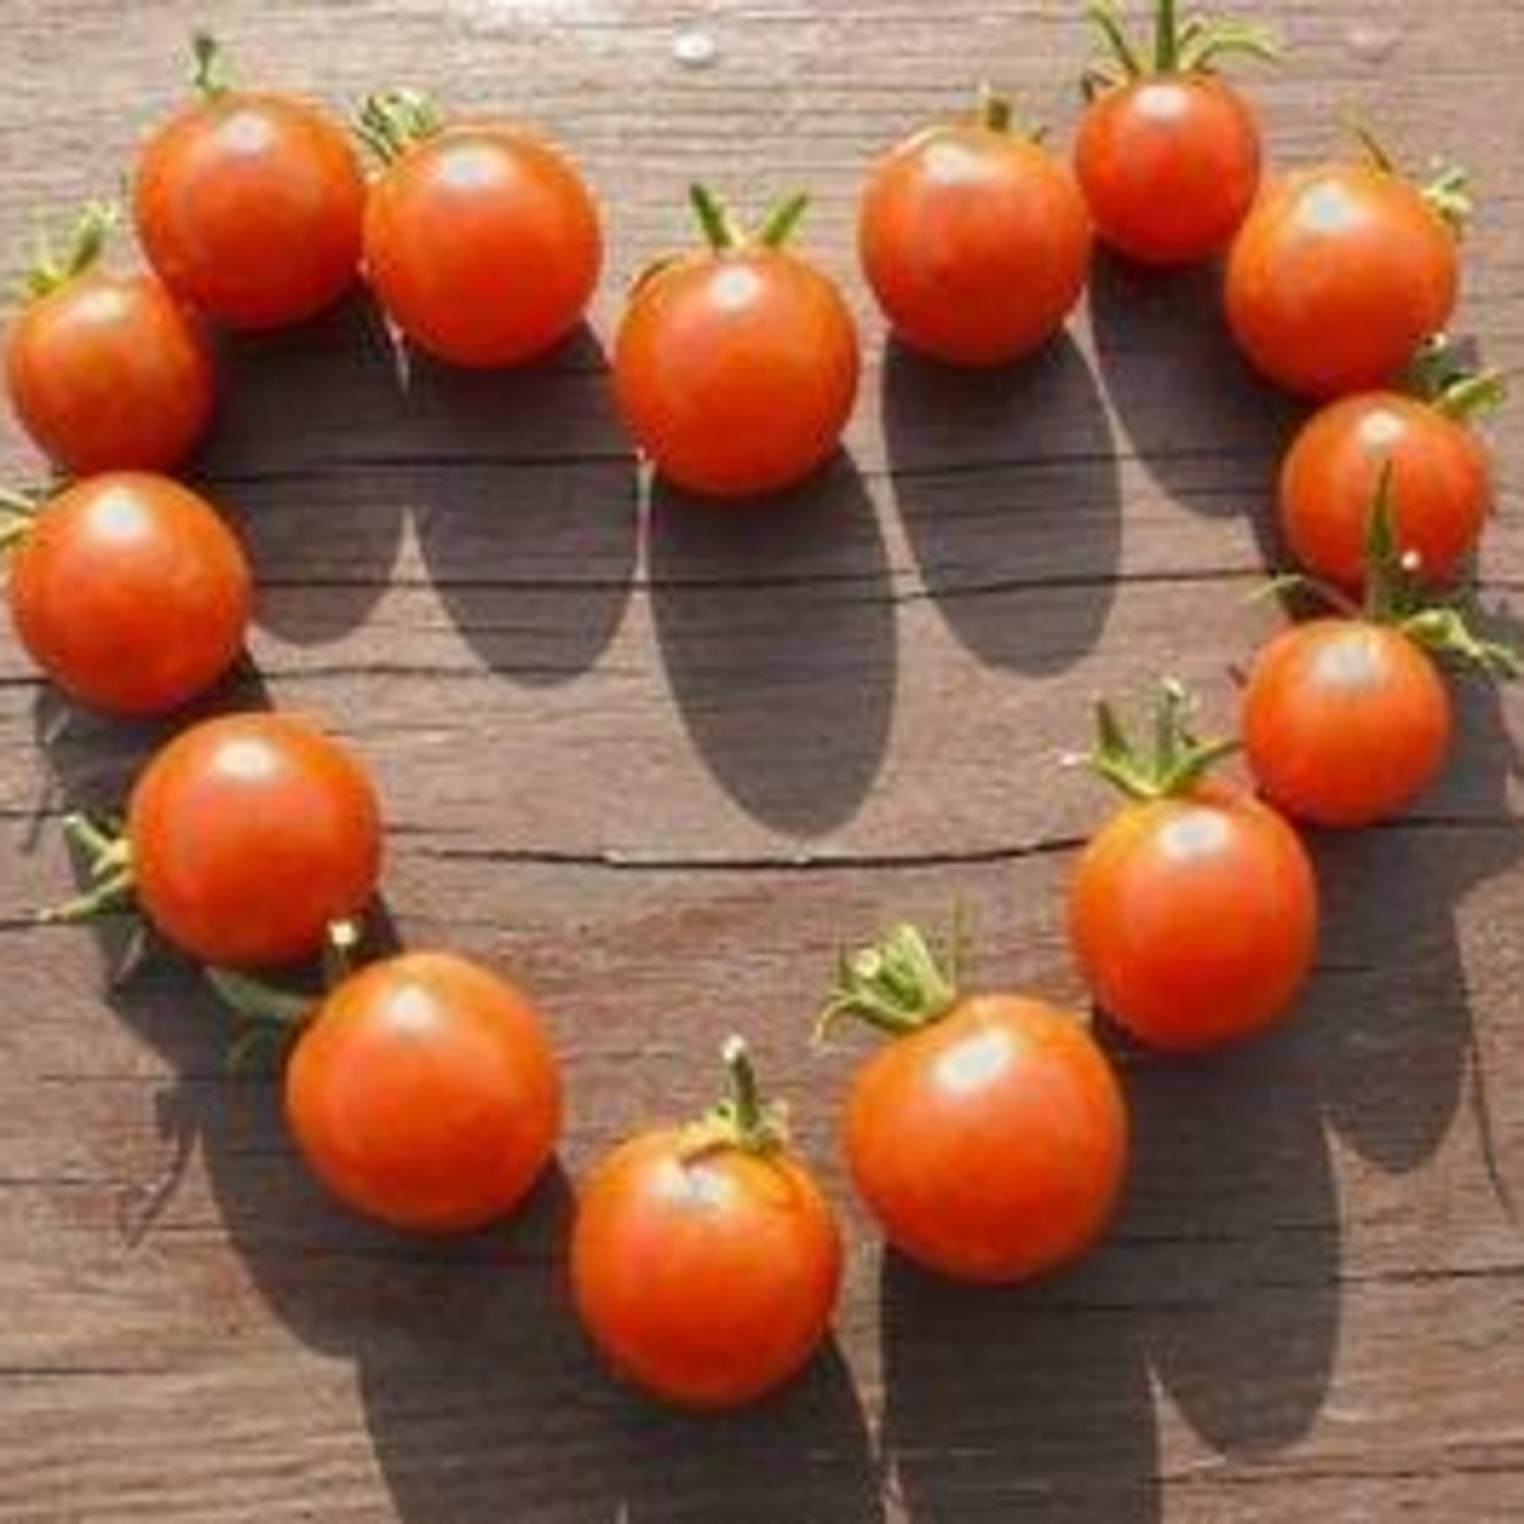 Tomatoes from Everblossom Farm